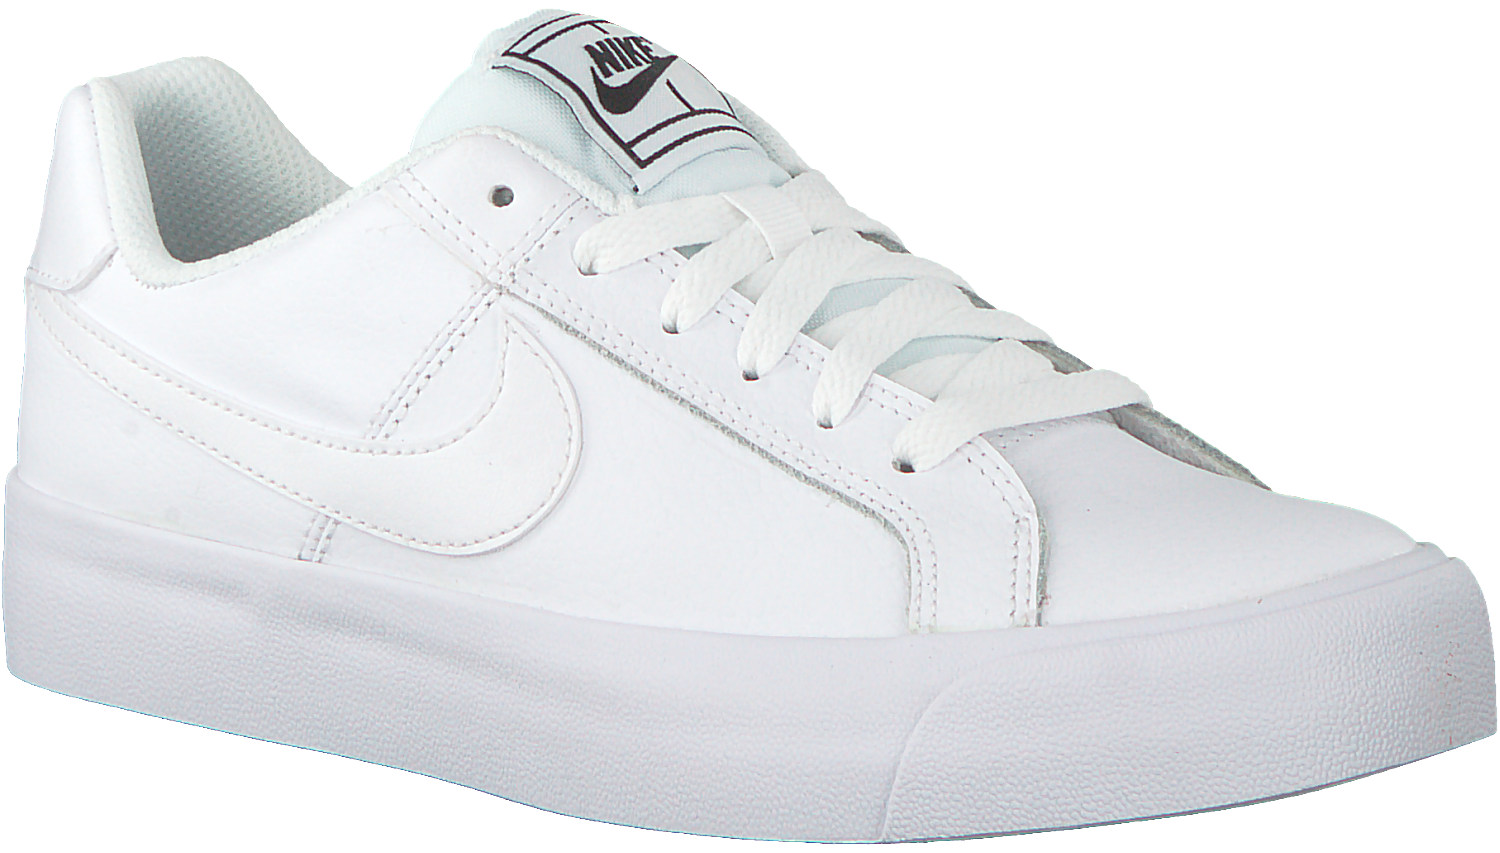 f02cb43b5b6 Witte NIKE Sneakers COURT ROYALE AC WMNS. NIKE. Previous